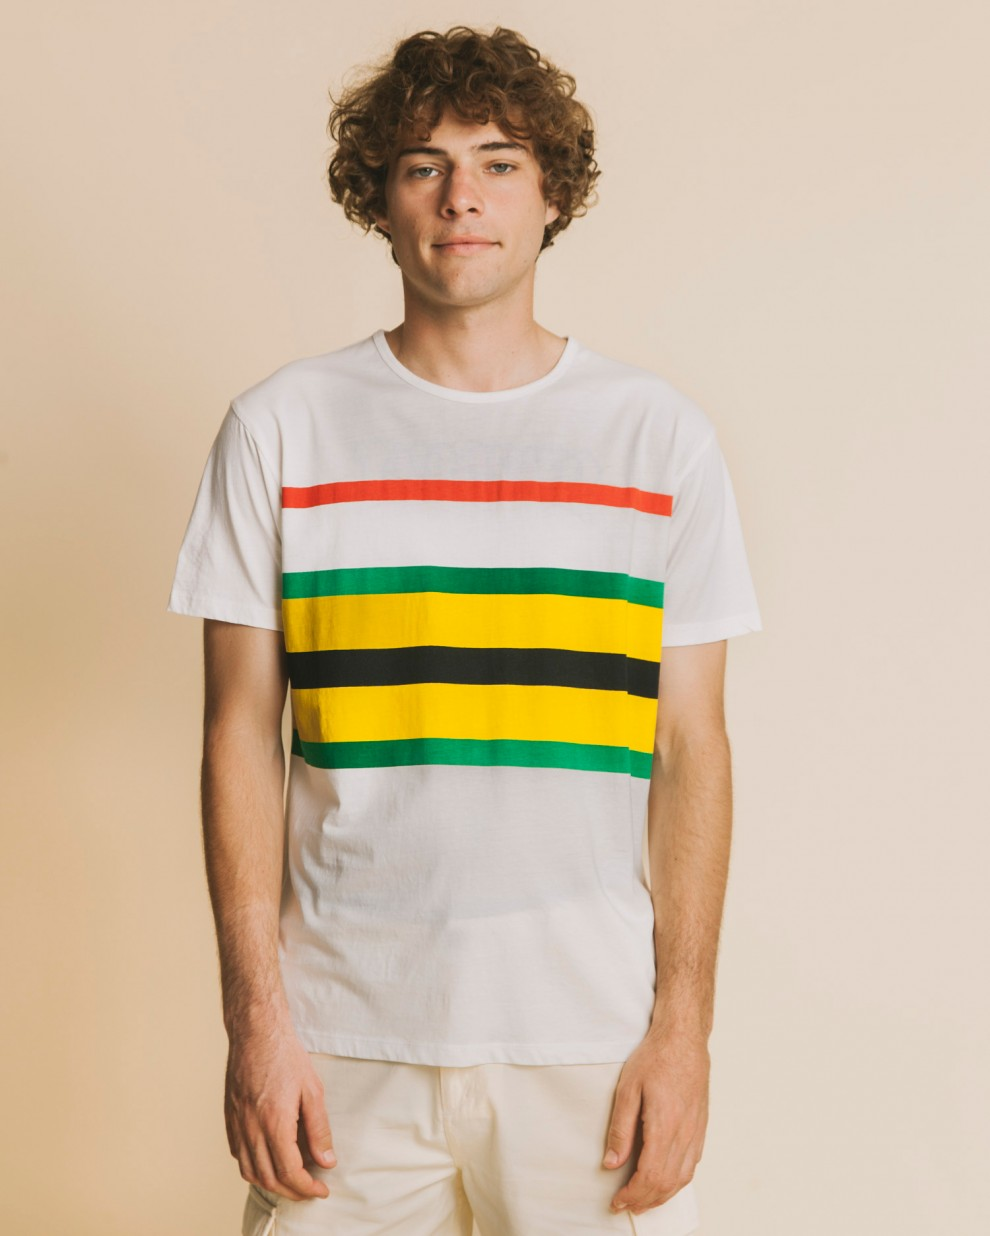 Senegal stripes t-shirt